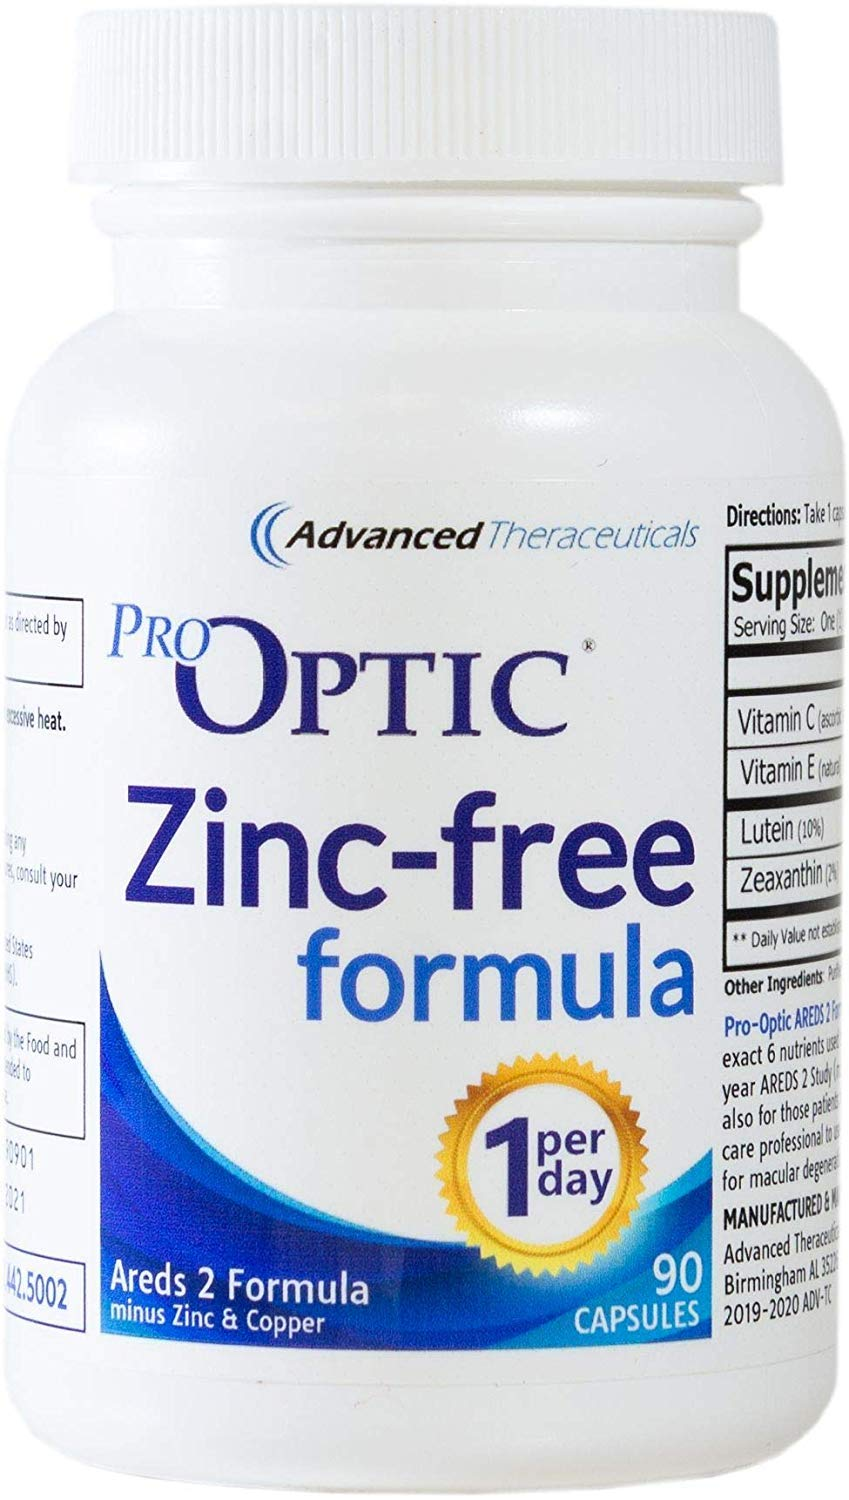 Pro-Optic AREDS 2 ZINC-Free Formula 3 Month Supply 1-Per-Day